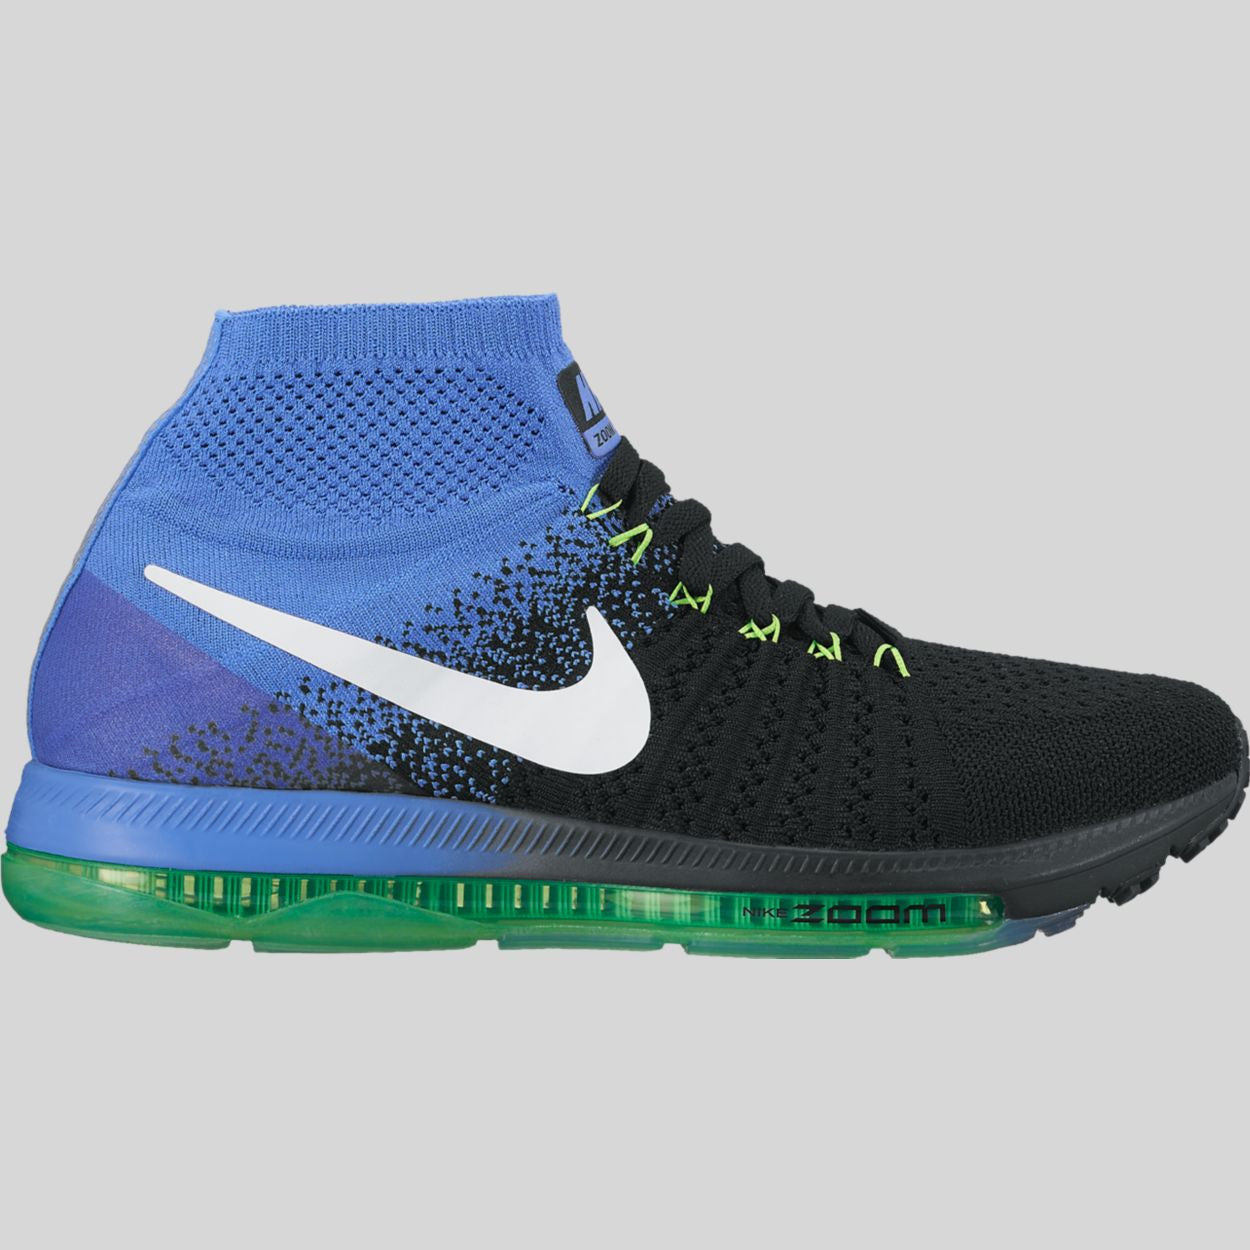 Nike Wmns Zoom All Out Flyknit Black White Medium Blue Electro Green  (845361-014